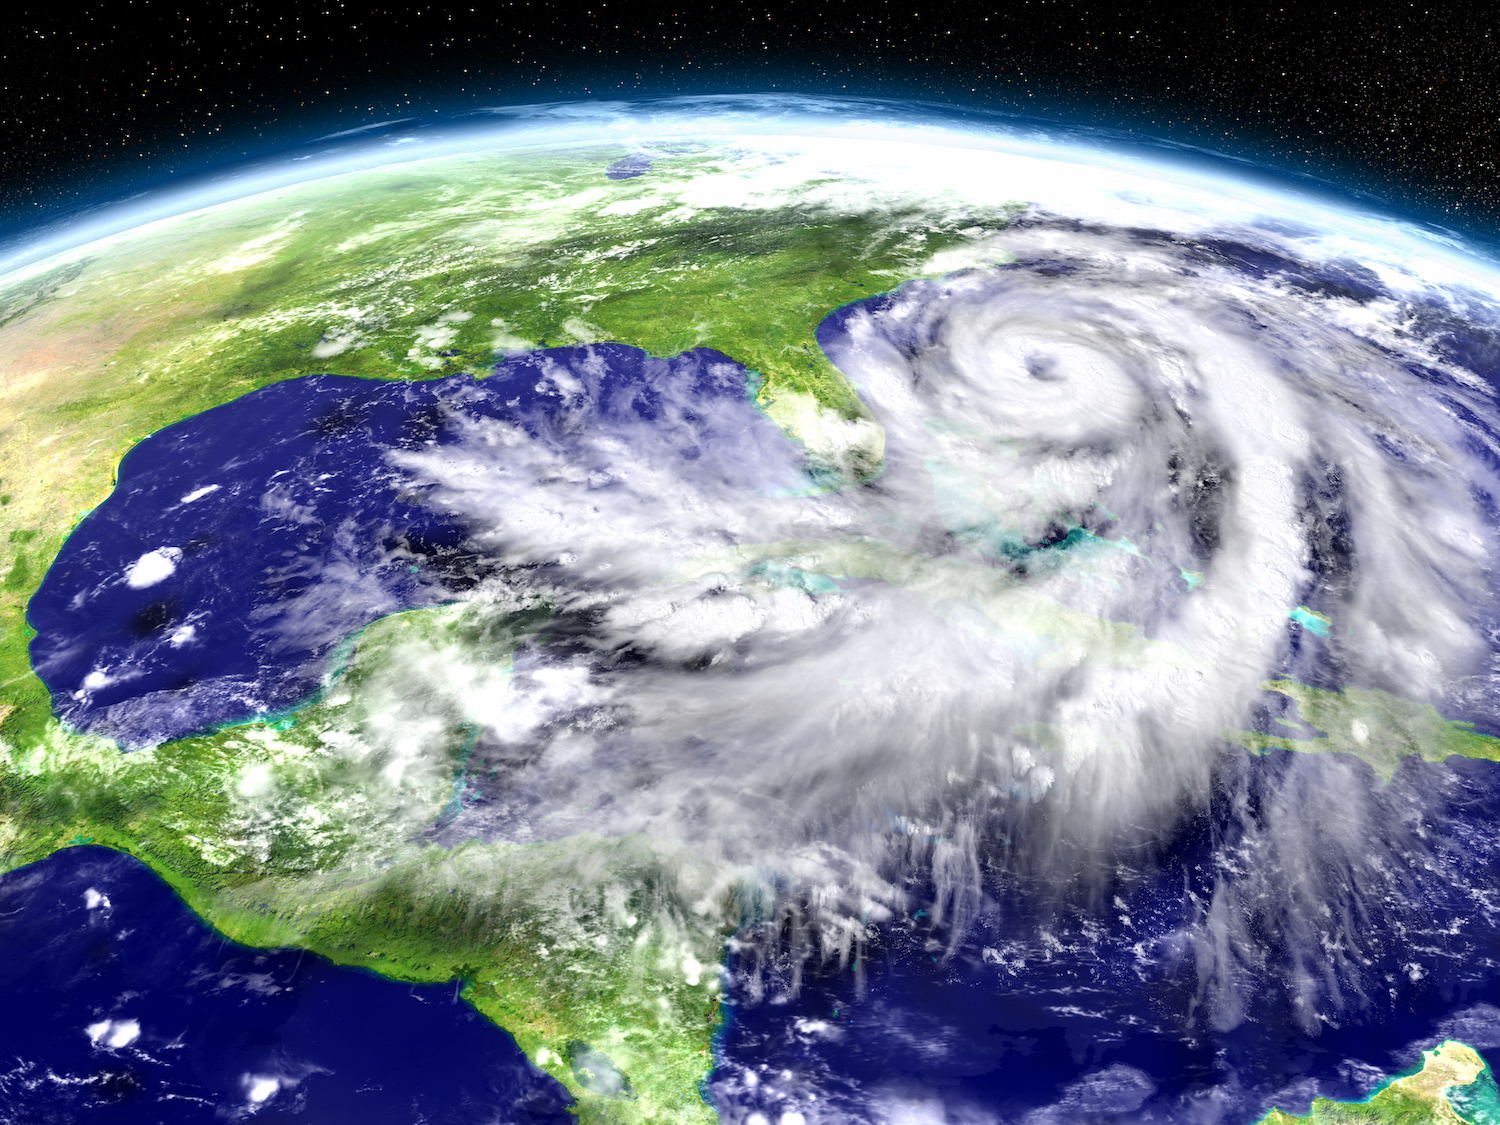 According to a recent update from the NOAA, the remainder 2017 Atlantic hurricane season will be more active than previously thought.